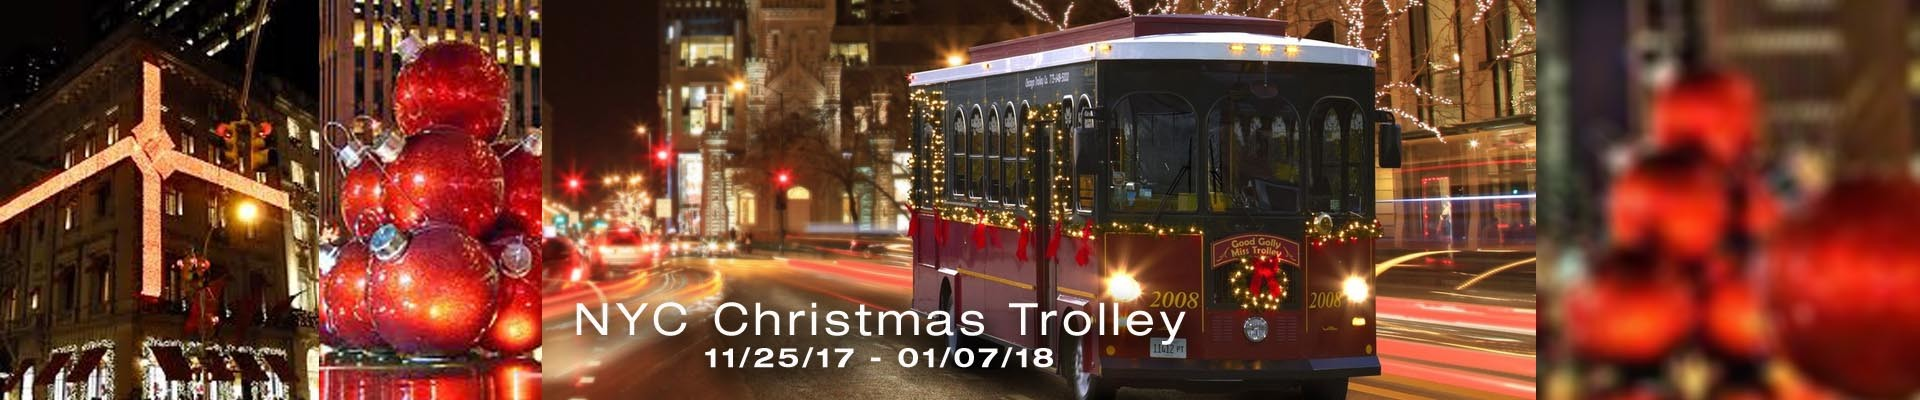 CHristmas Trolley NYC